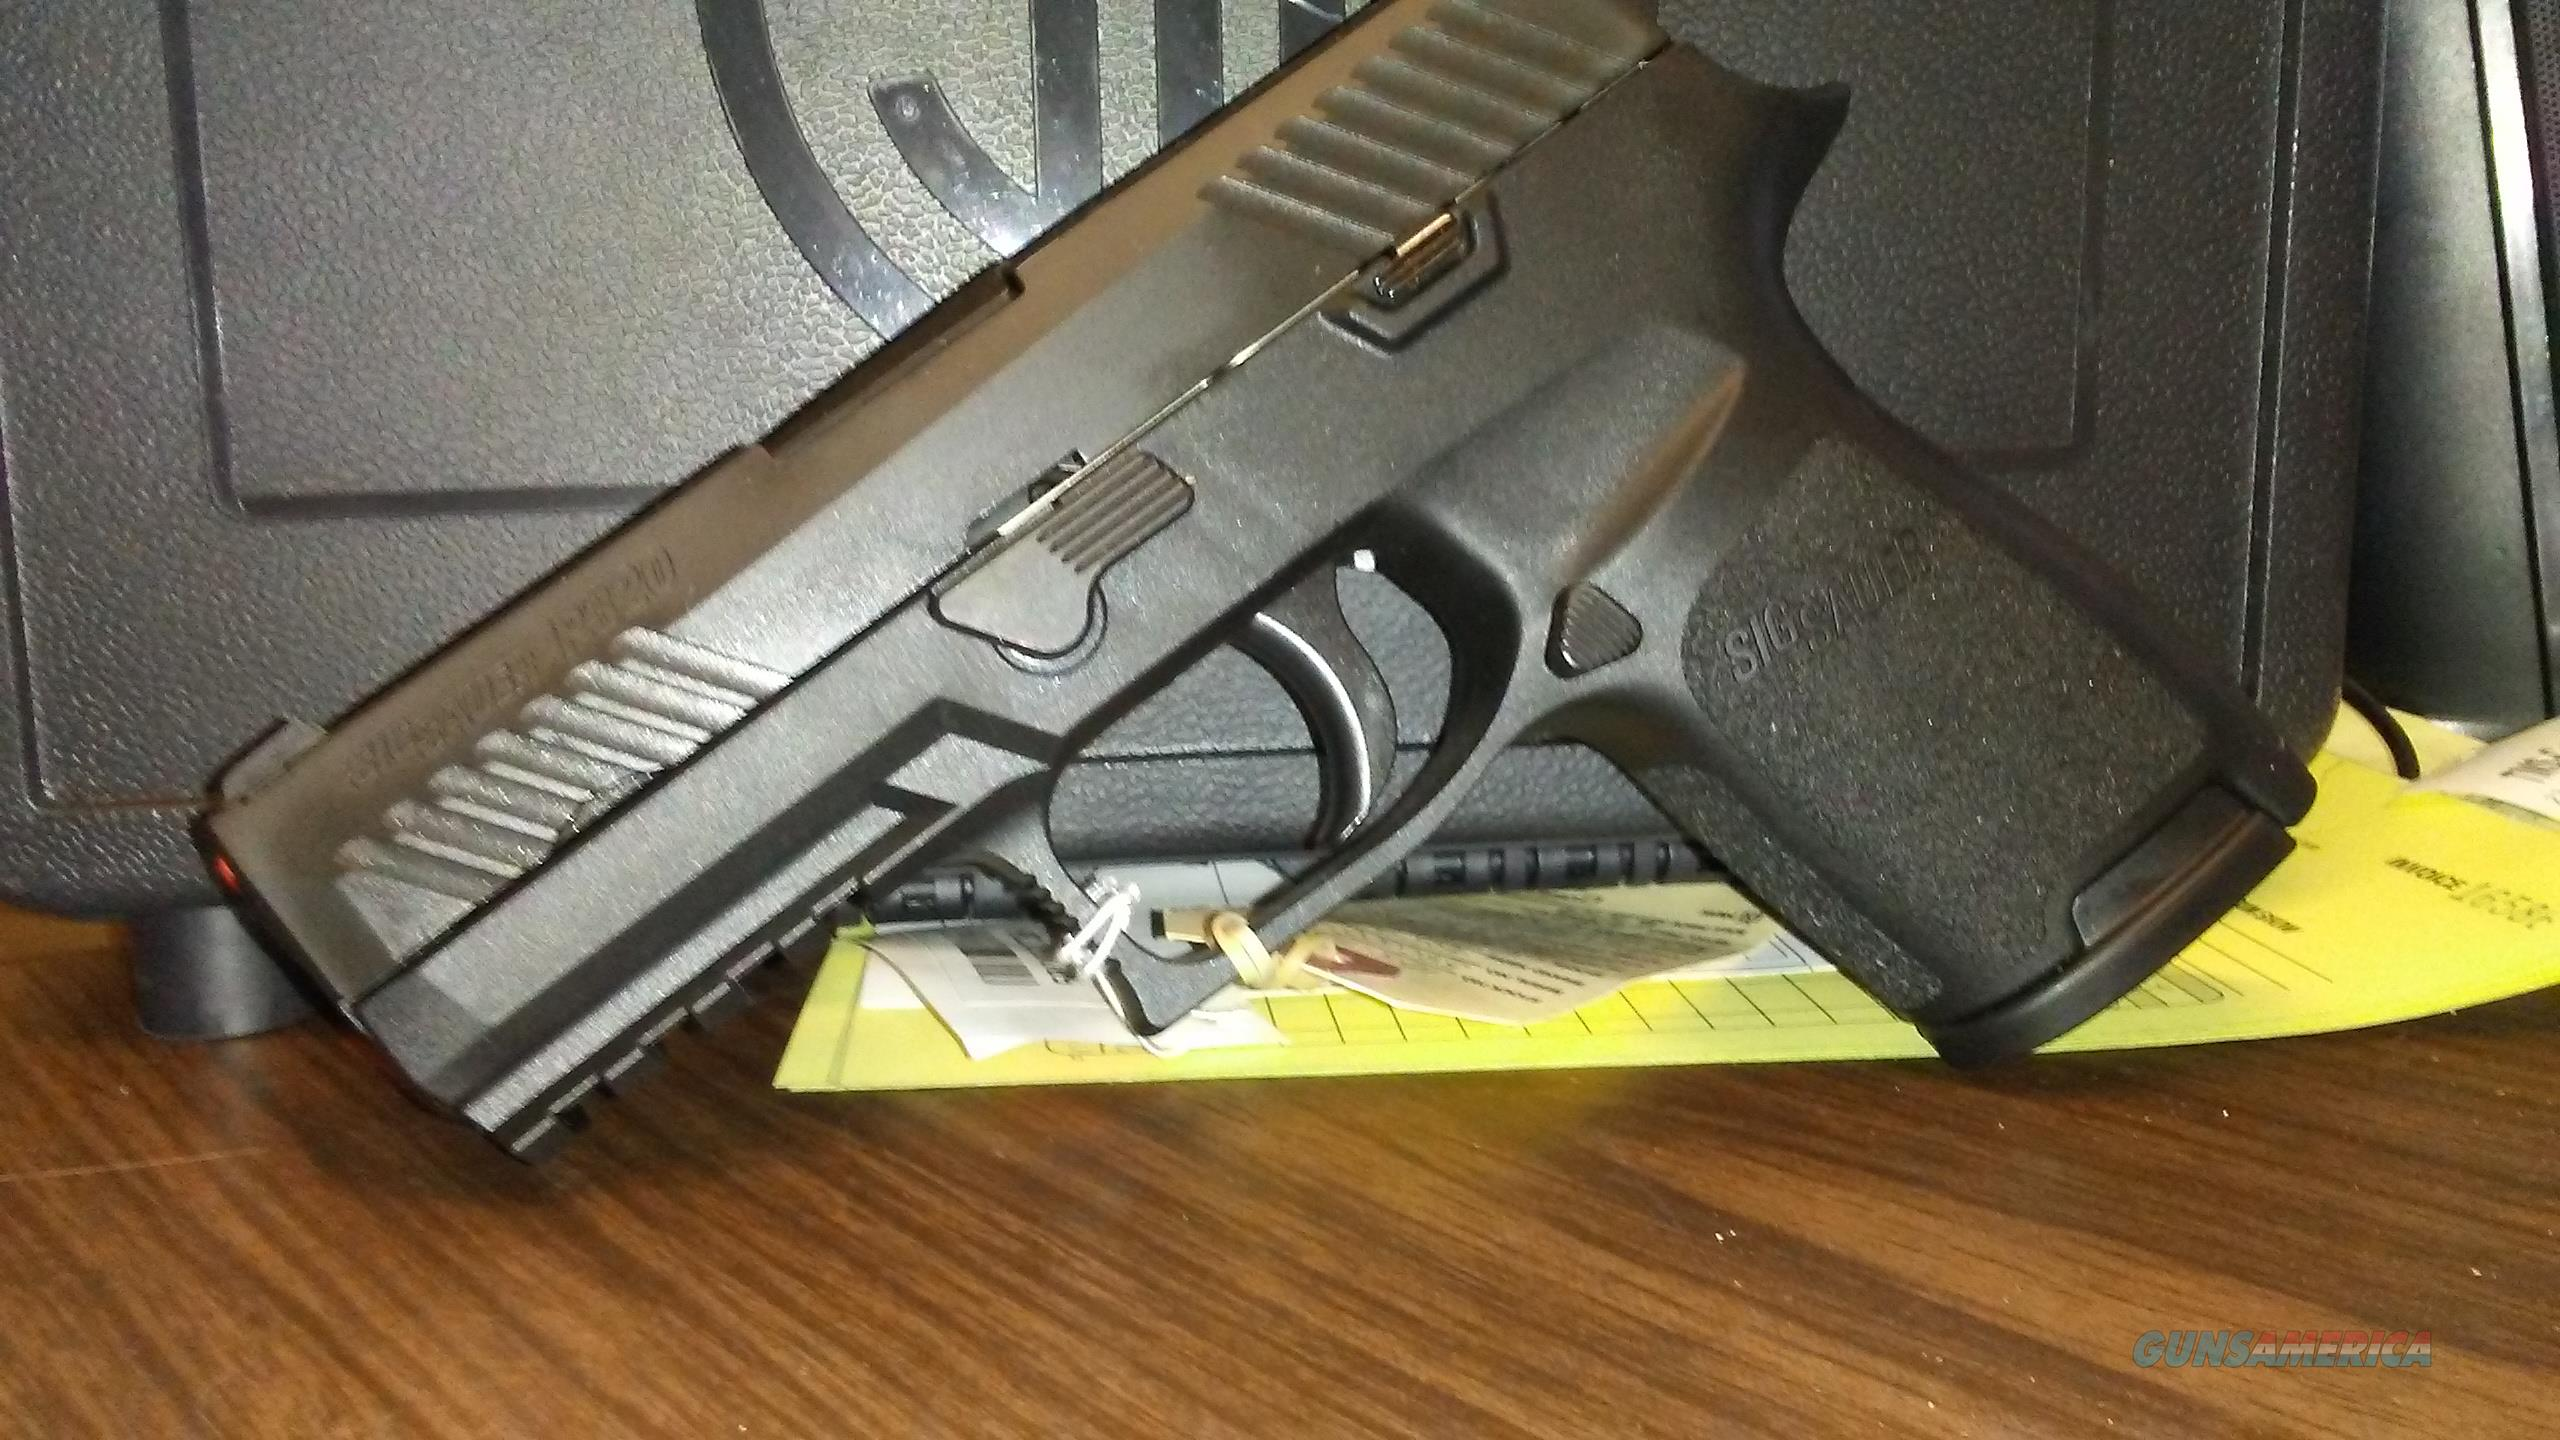 Sig Sauer P320 40 S&W  Compact  Guns > Pistols > Sig - Sauer/Sigarms Pistols > P320